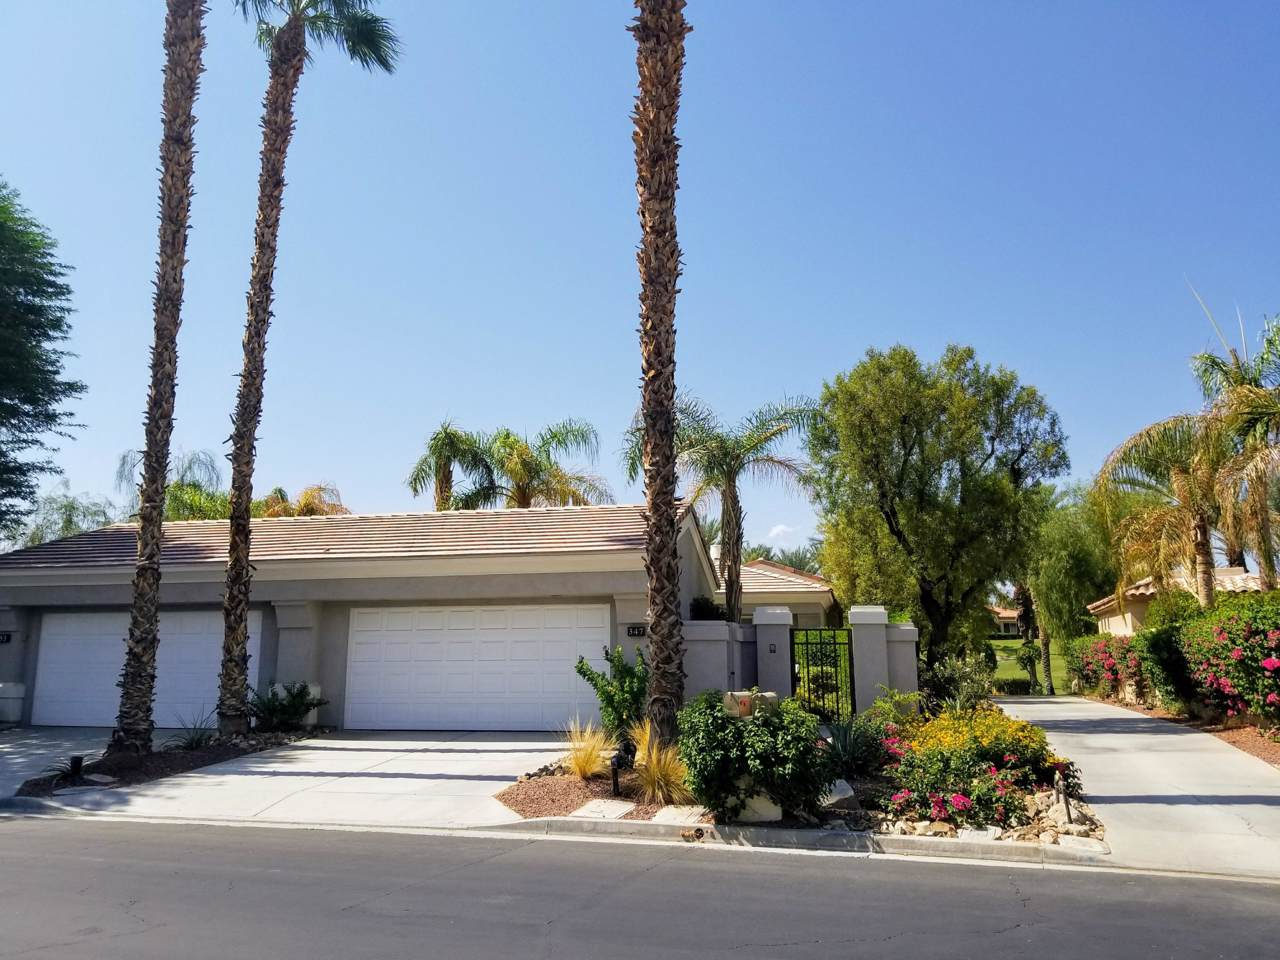 347 Desert Holly Drive - Photo 1